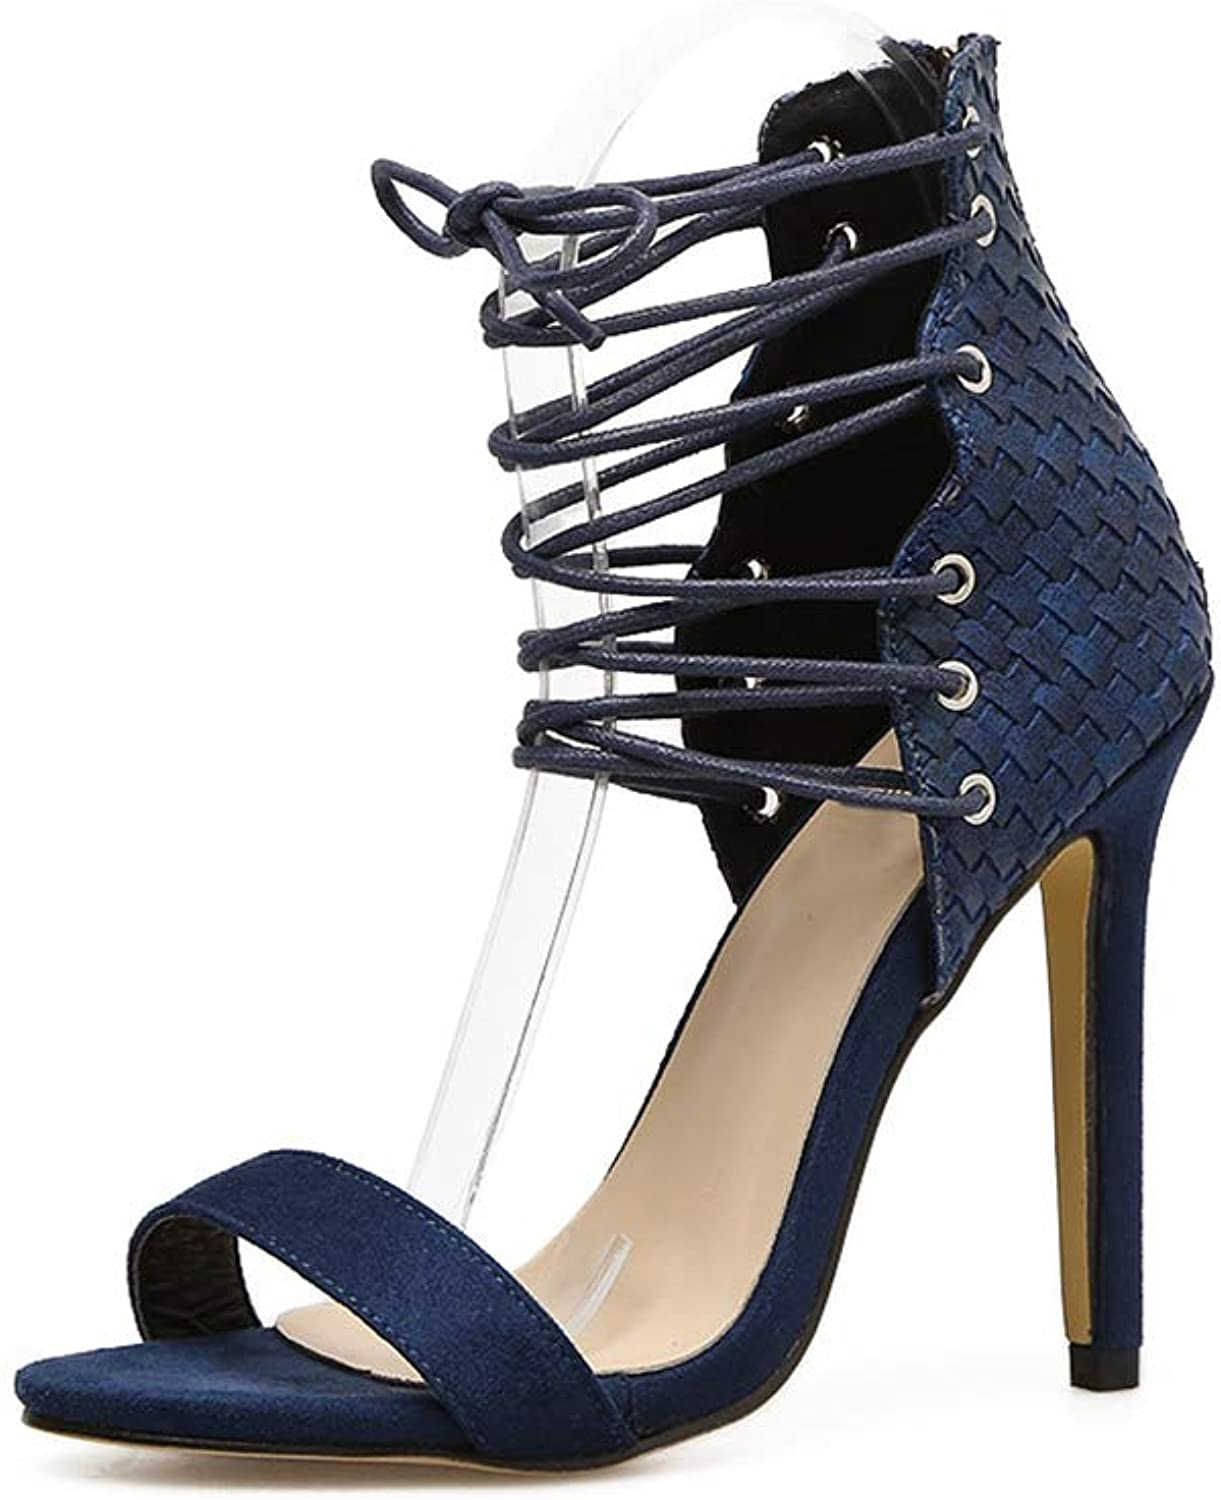 Kyle Walsh Pa Women Sexy Sandals Lace-up Stiletto Peep Toe Female Stylish Pumps shoes